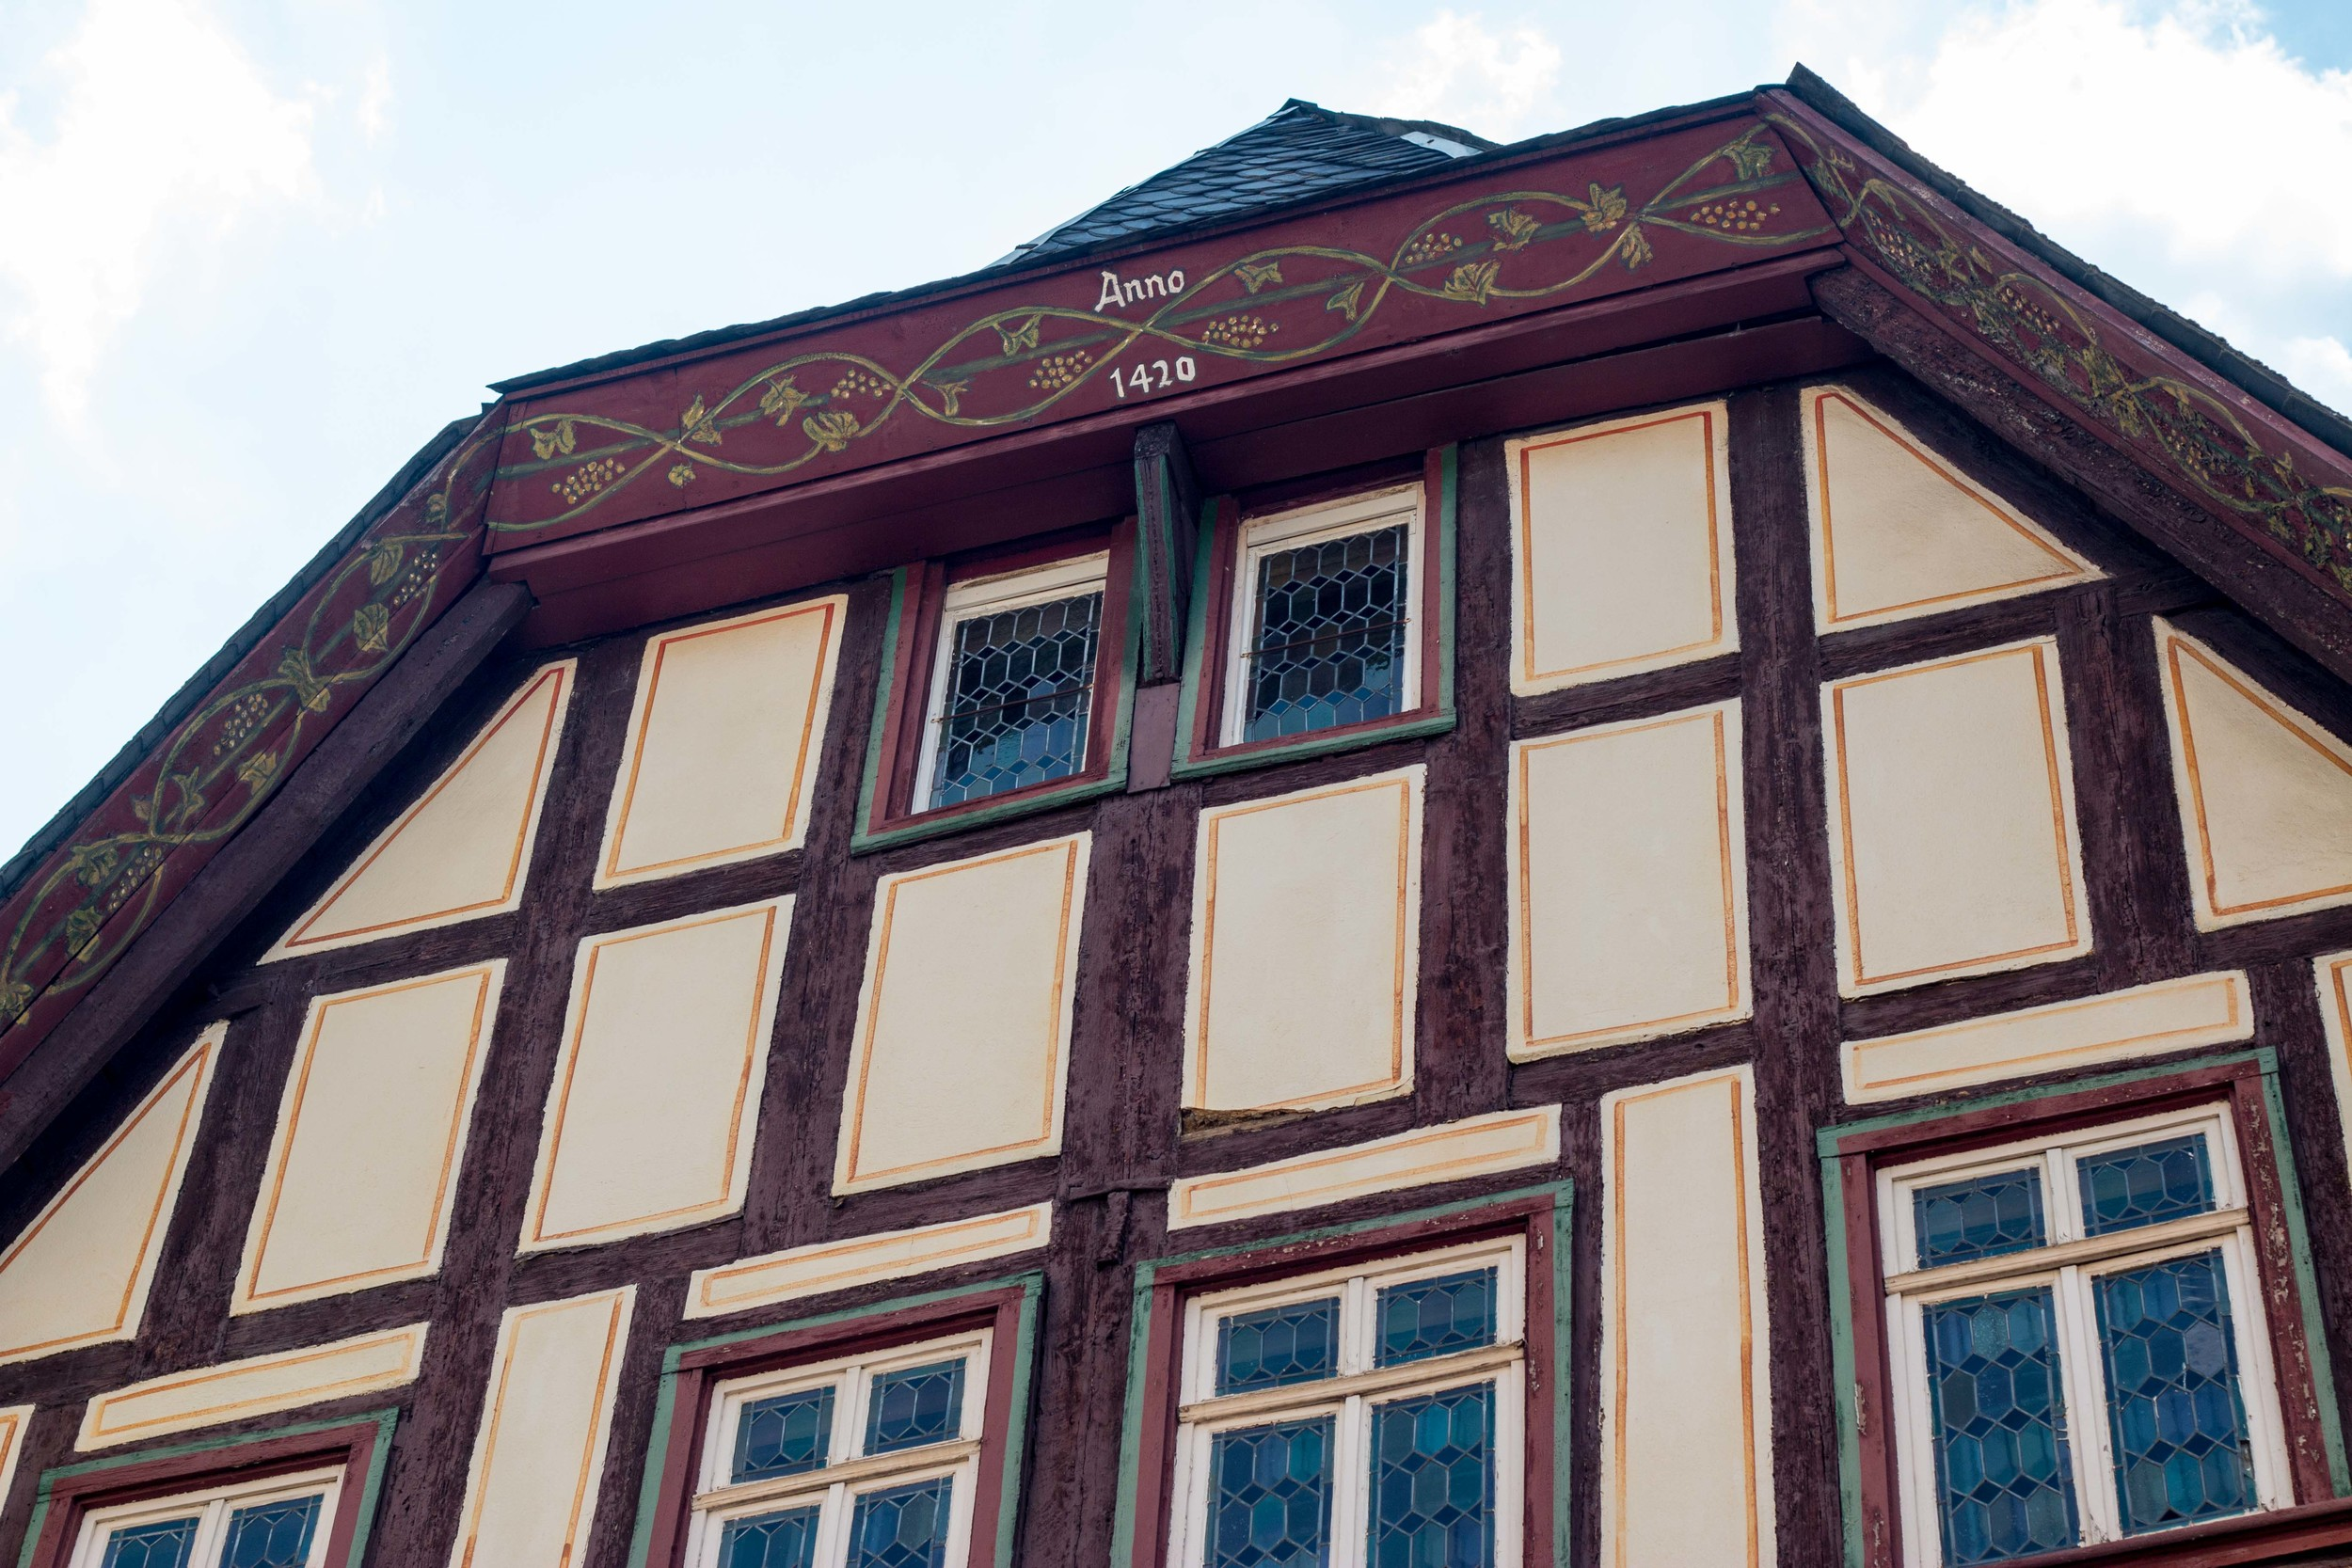 Building in Bacharach dating from 1420!